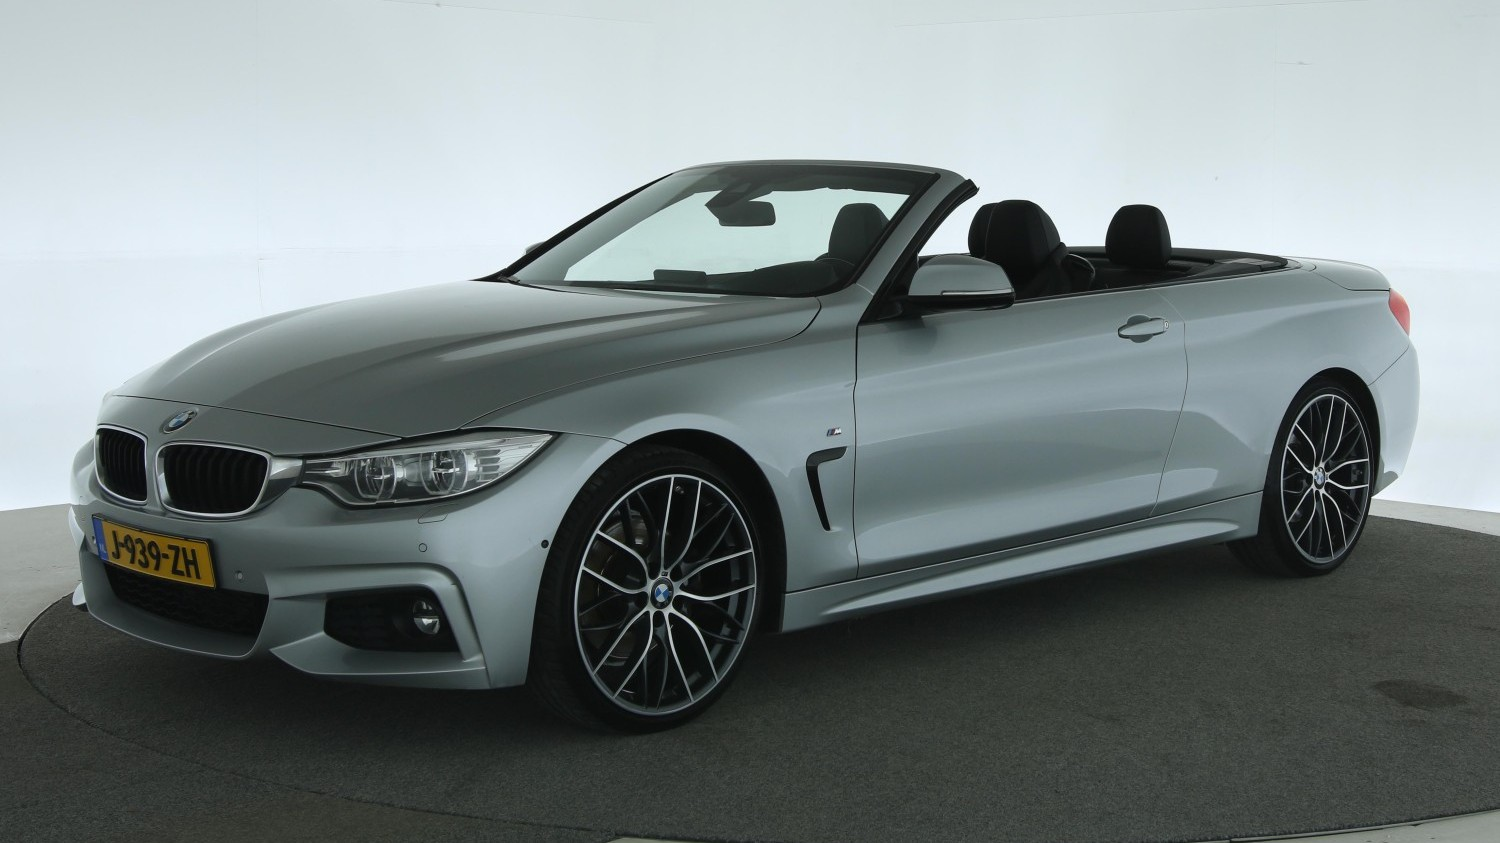 BMW 4-serie Cabriolet 2015 J-939-ZH 1